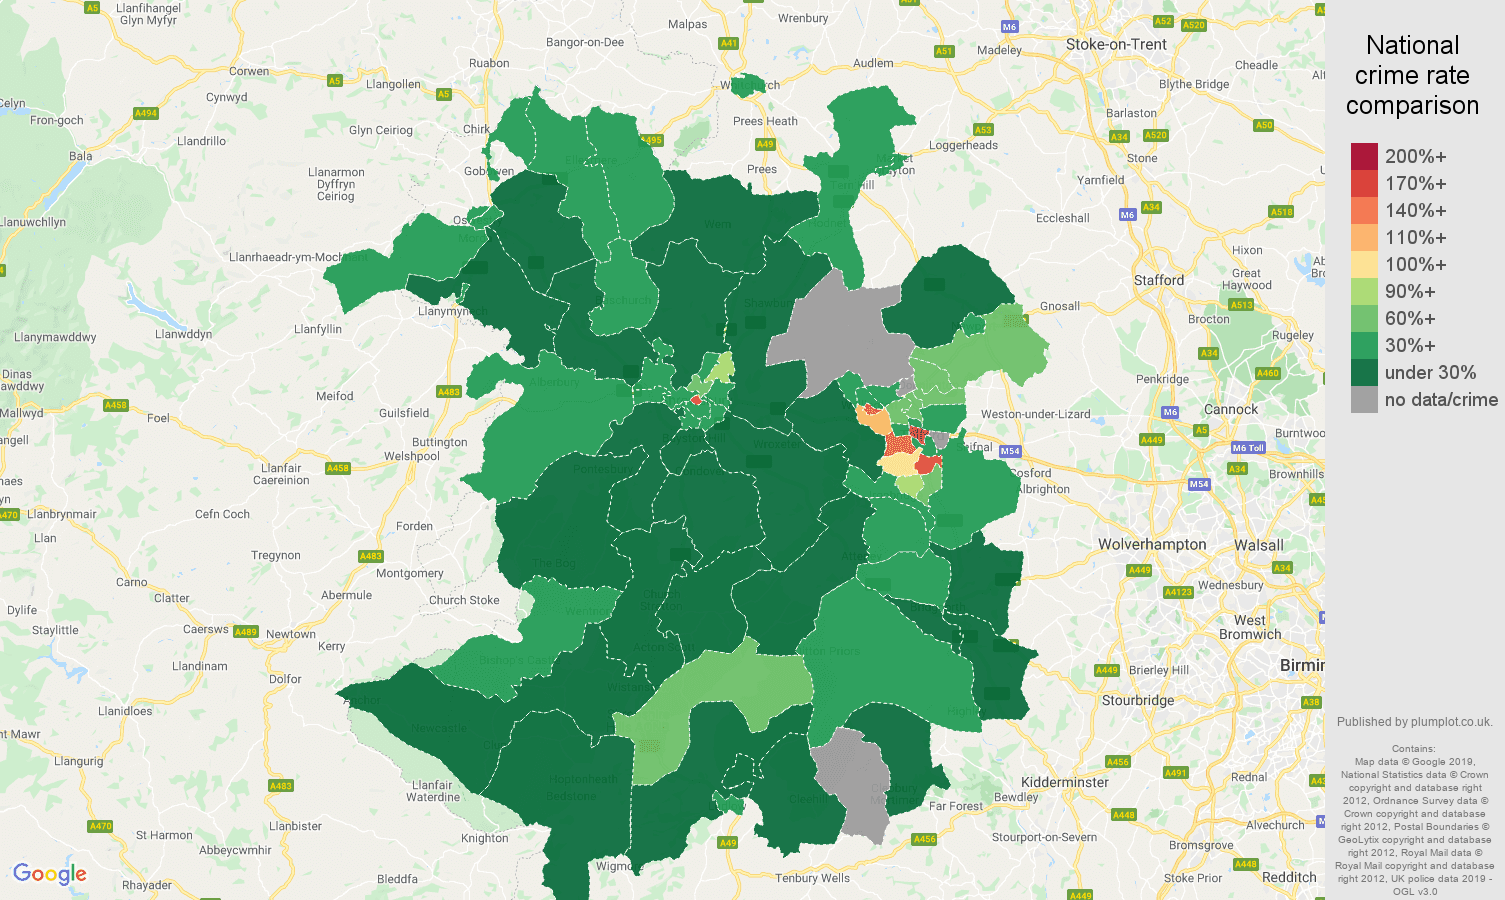 Shropshire public order crime rate comparison map